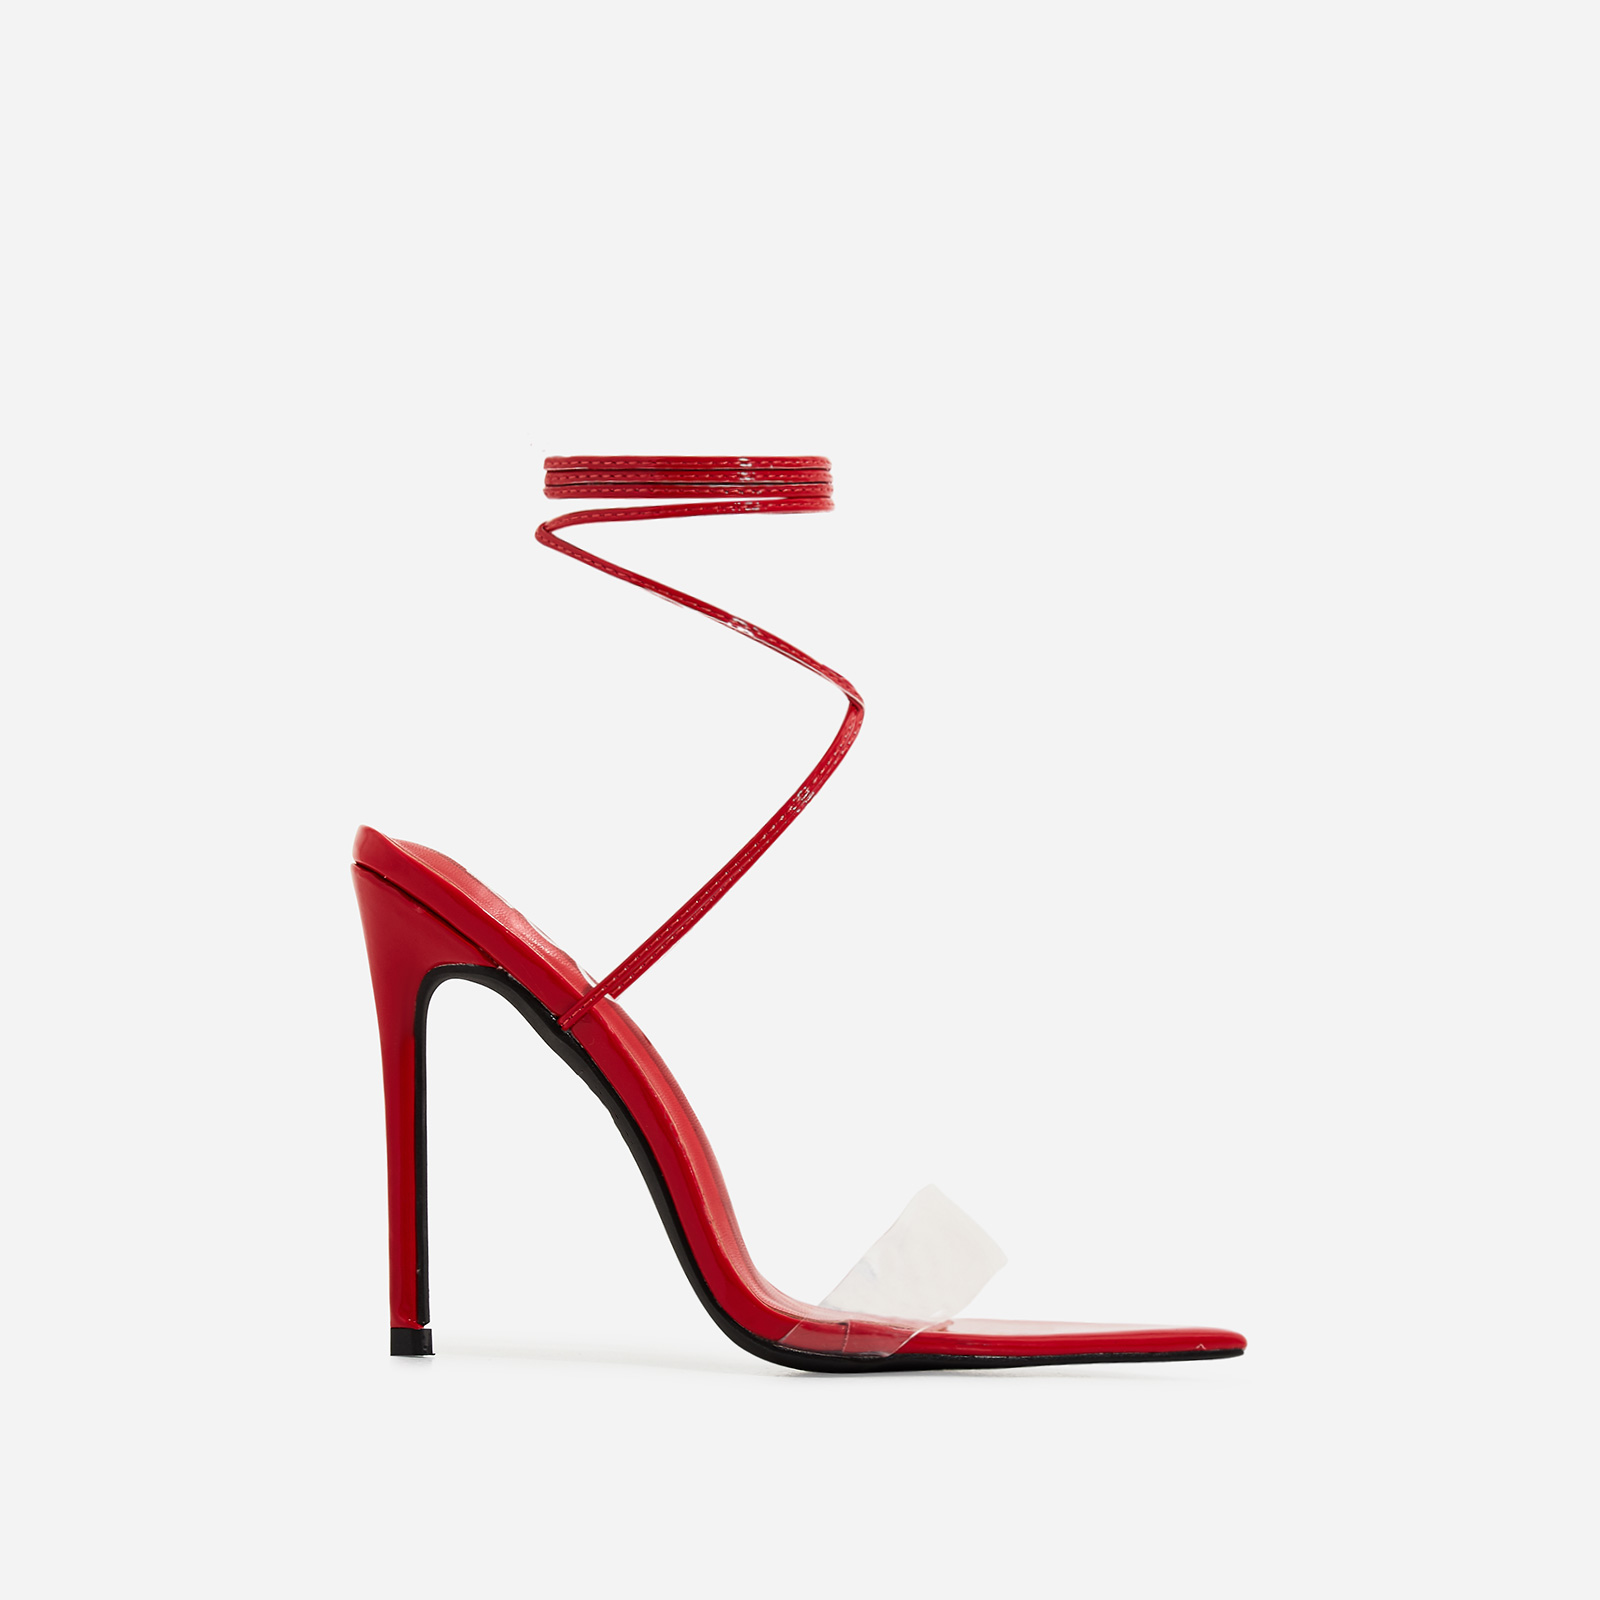 Miami Lace Up Perspex Pointed Heel In Red Patent